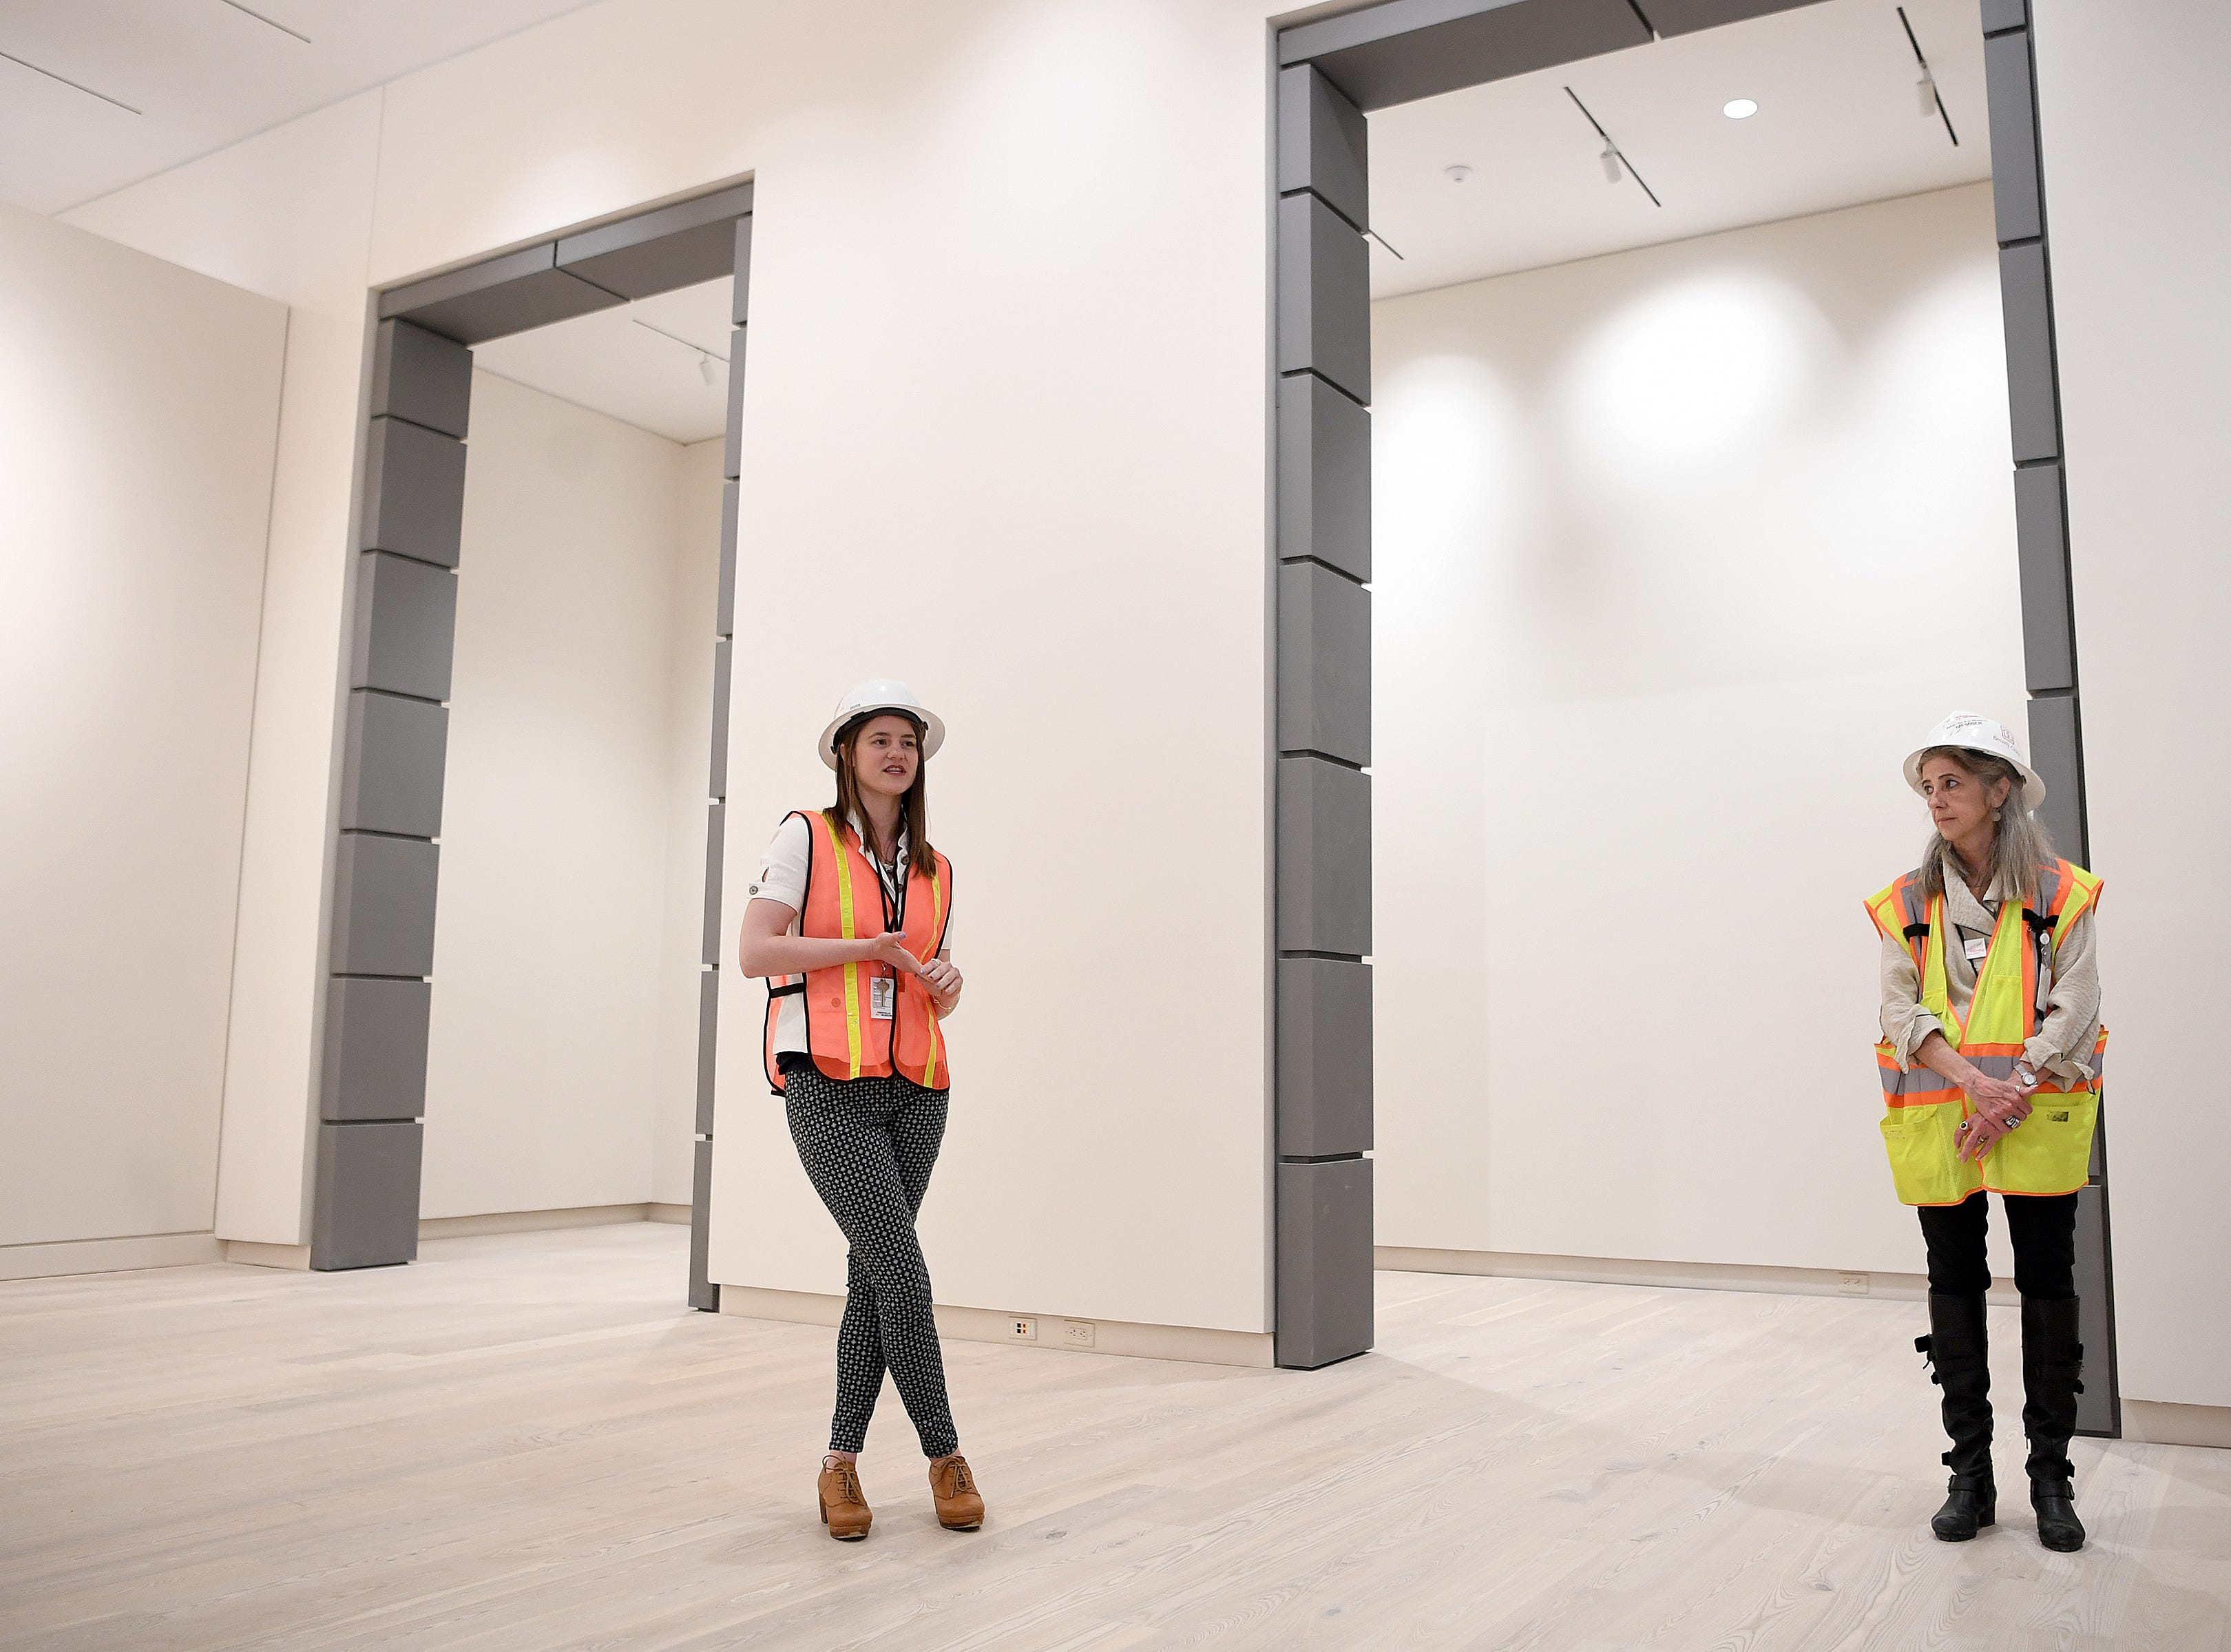 Asheville Art Museum curatorial assistant Hilary Schroeder talks about the exhibit which will be displayed once the construction is complete during a media tour of the new building on May 3, 2019.